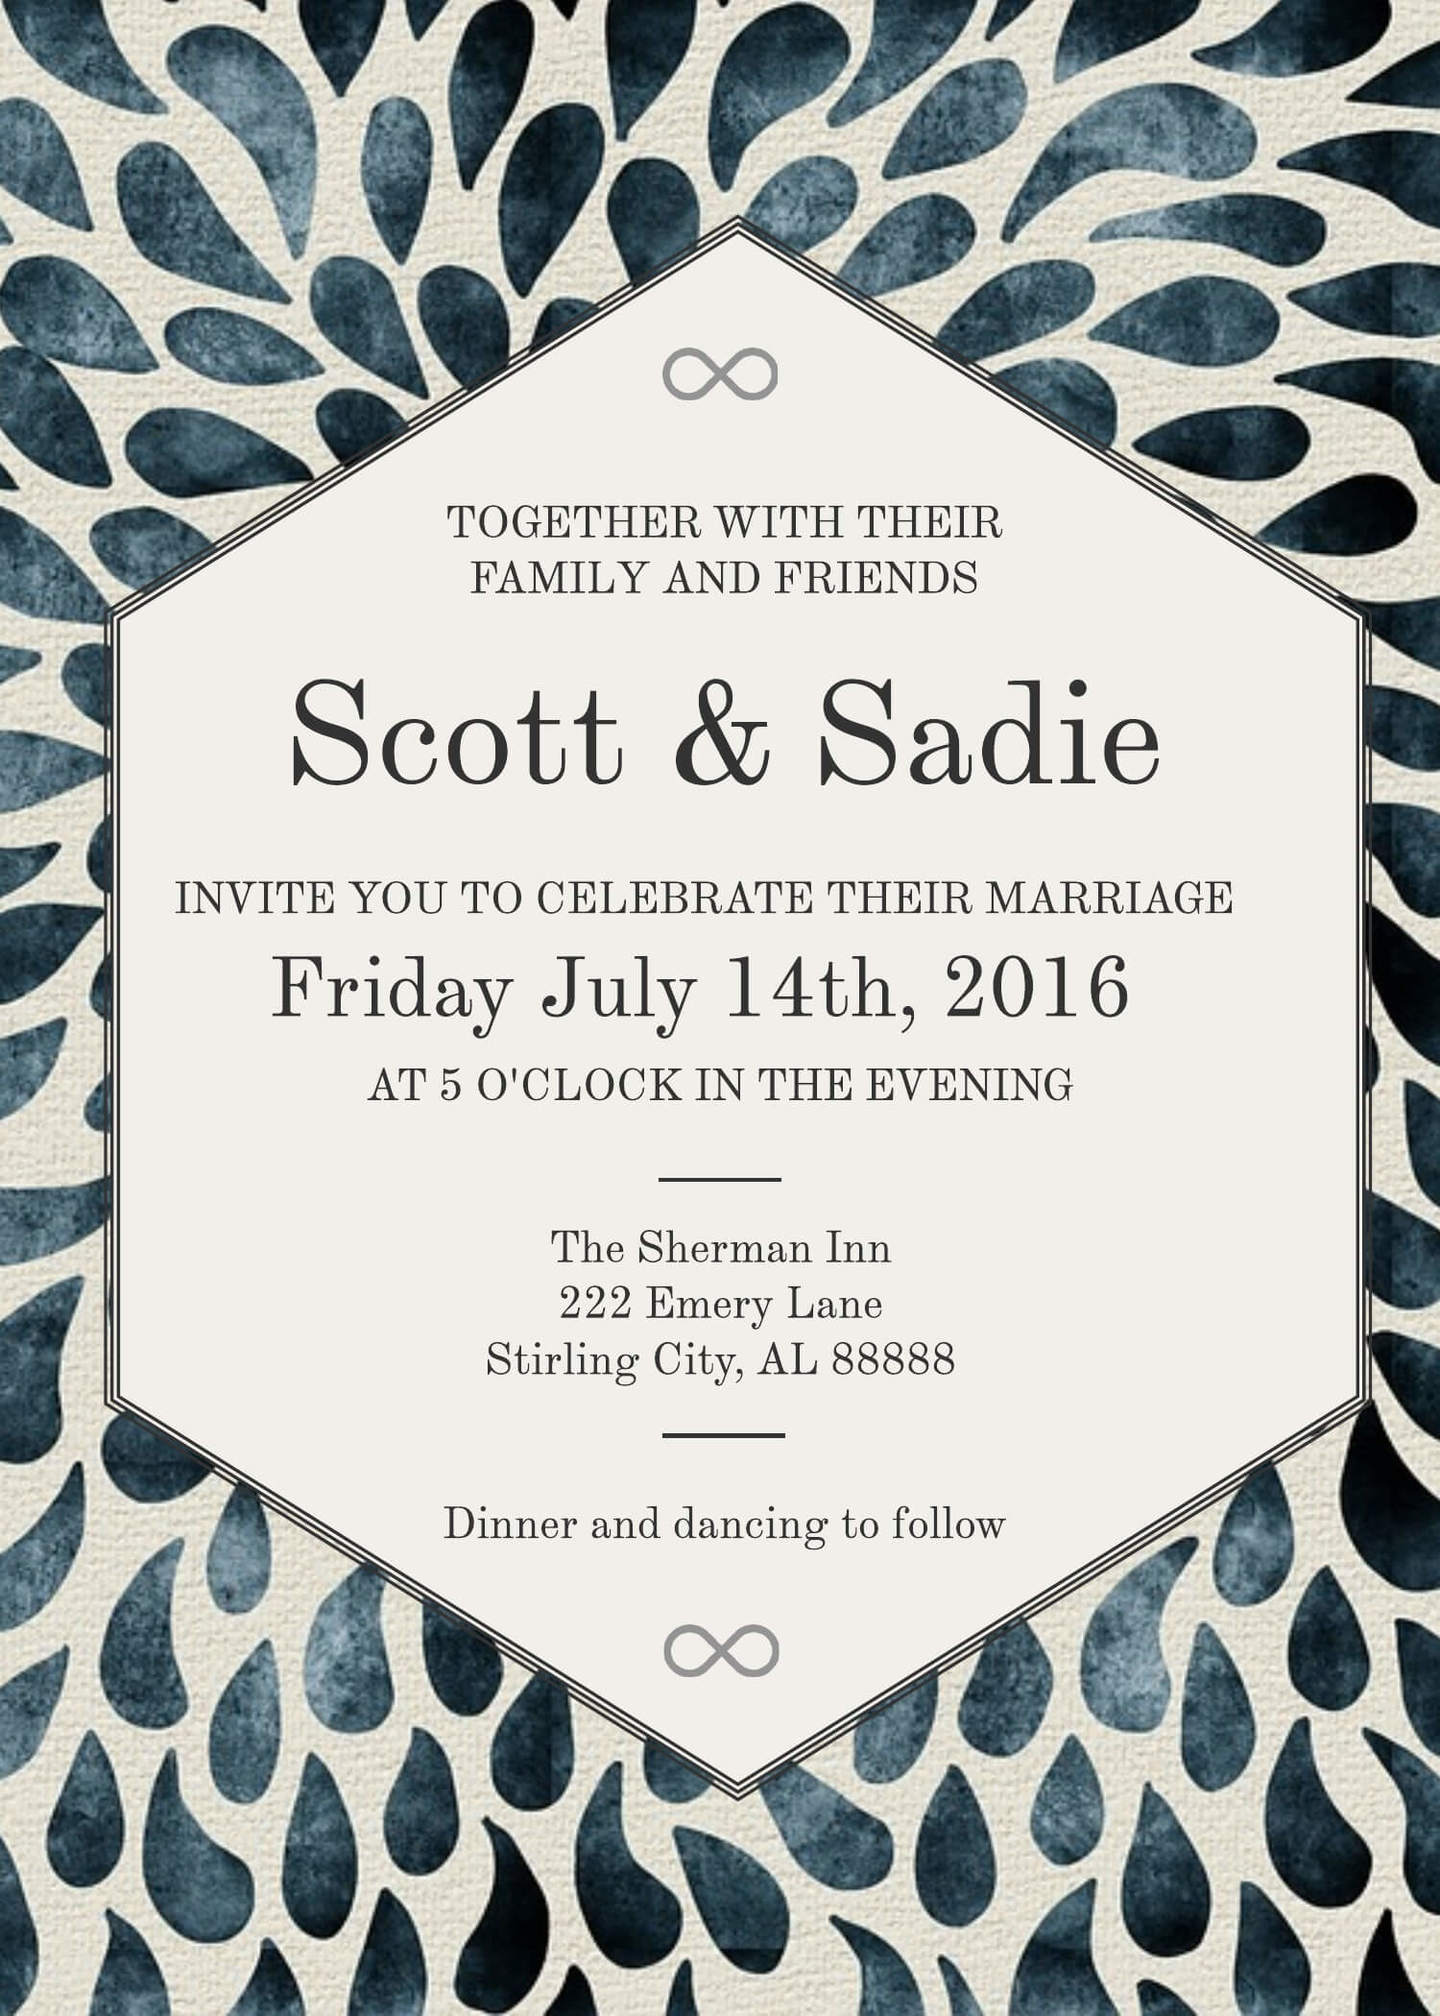 16 free invitation card templates examples lucidpress rsvp wedding invitation 5x7 stopboris Choice Image